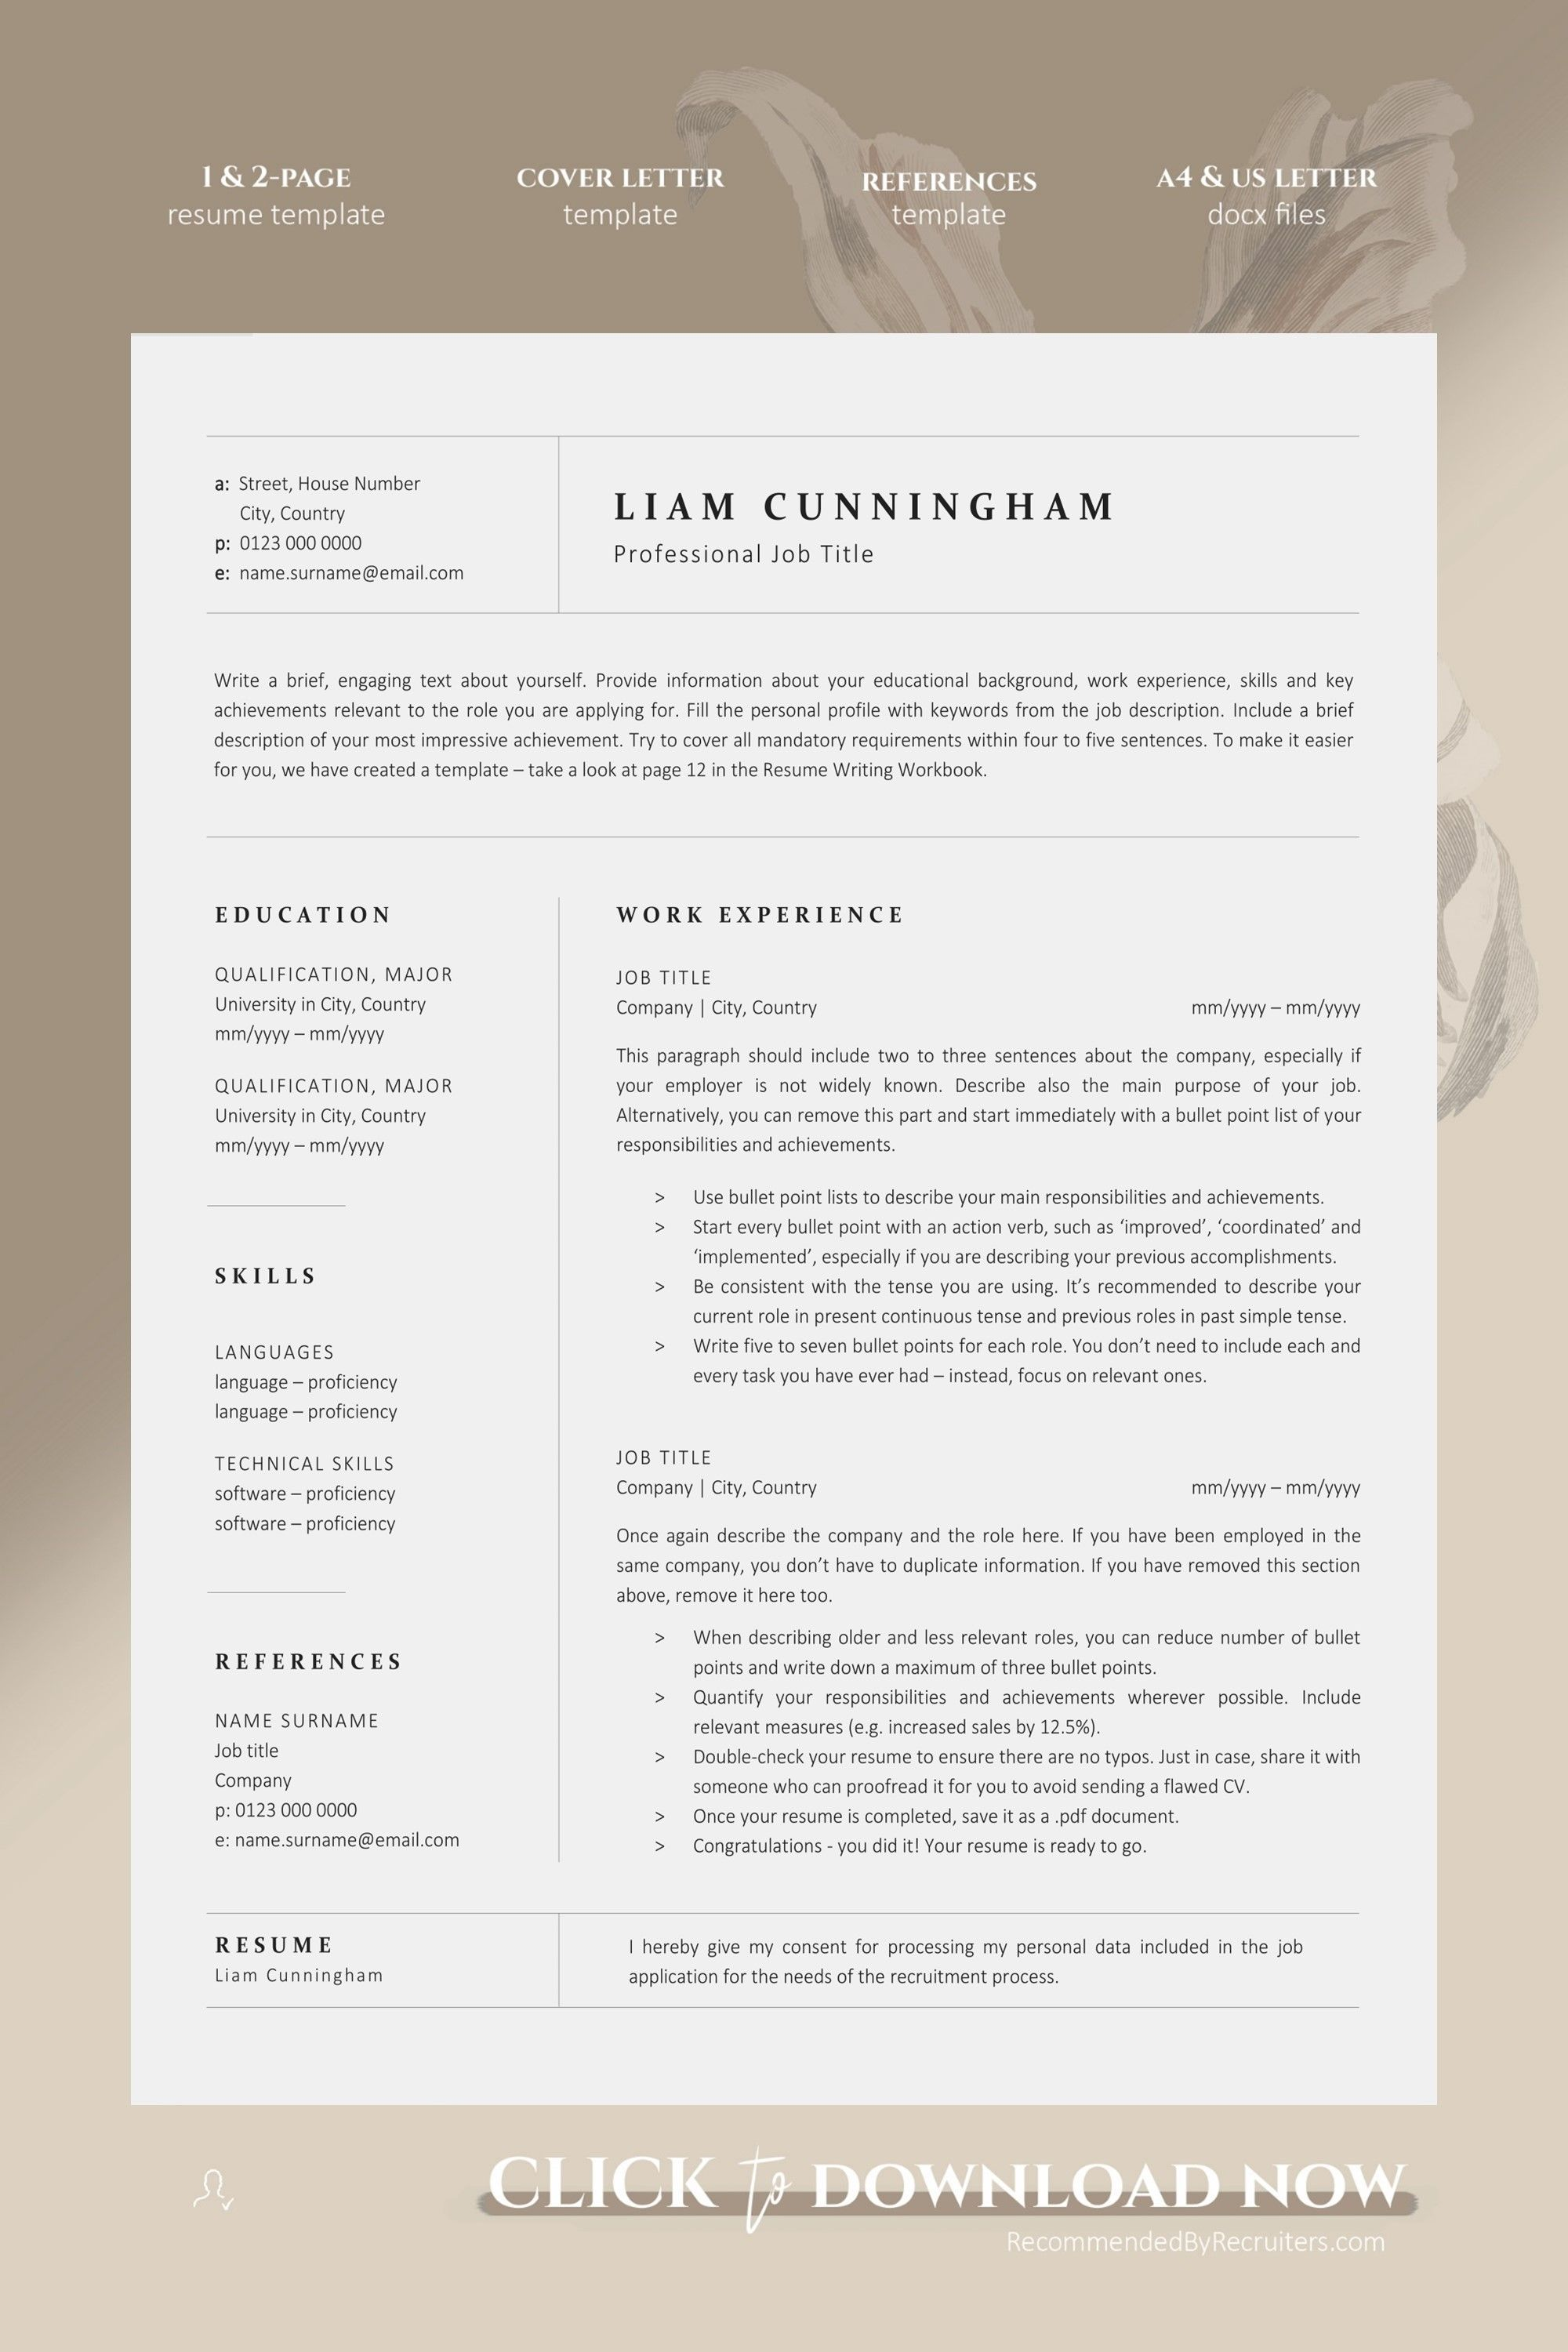 Clean Resume And Cover Letter Template Instant Download Etsy Job Resume Examples Resume Template Minimalist Resume